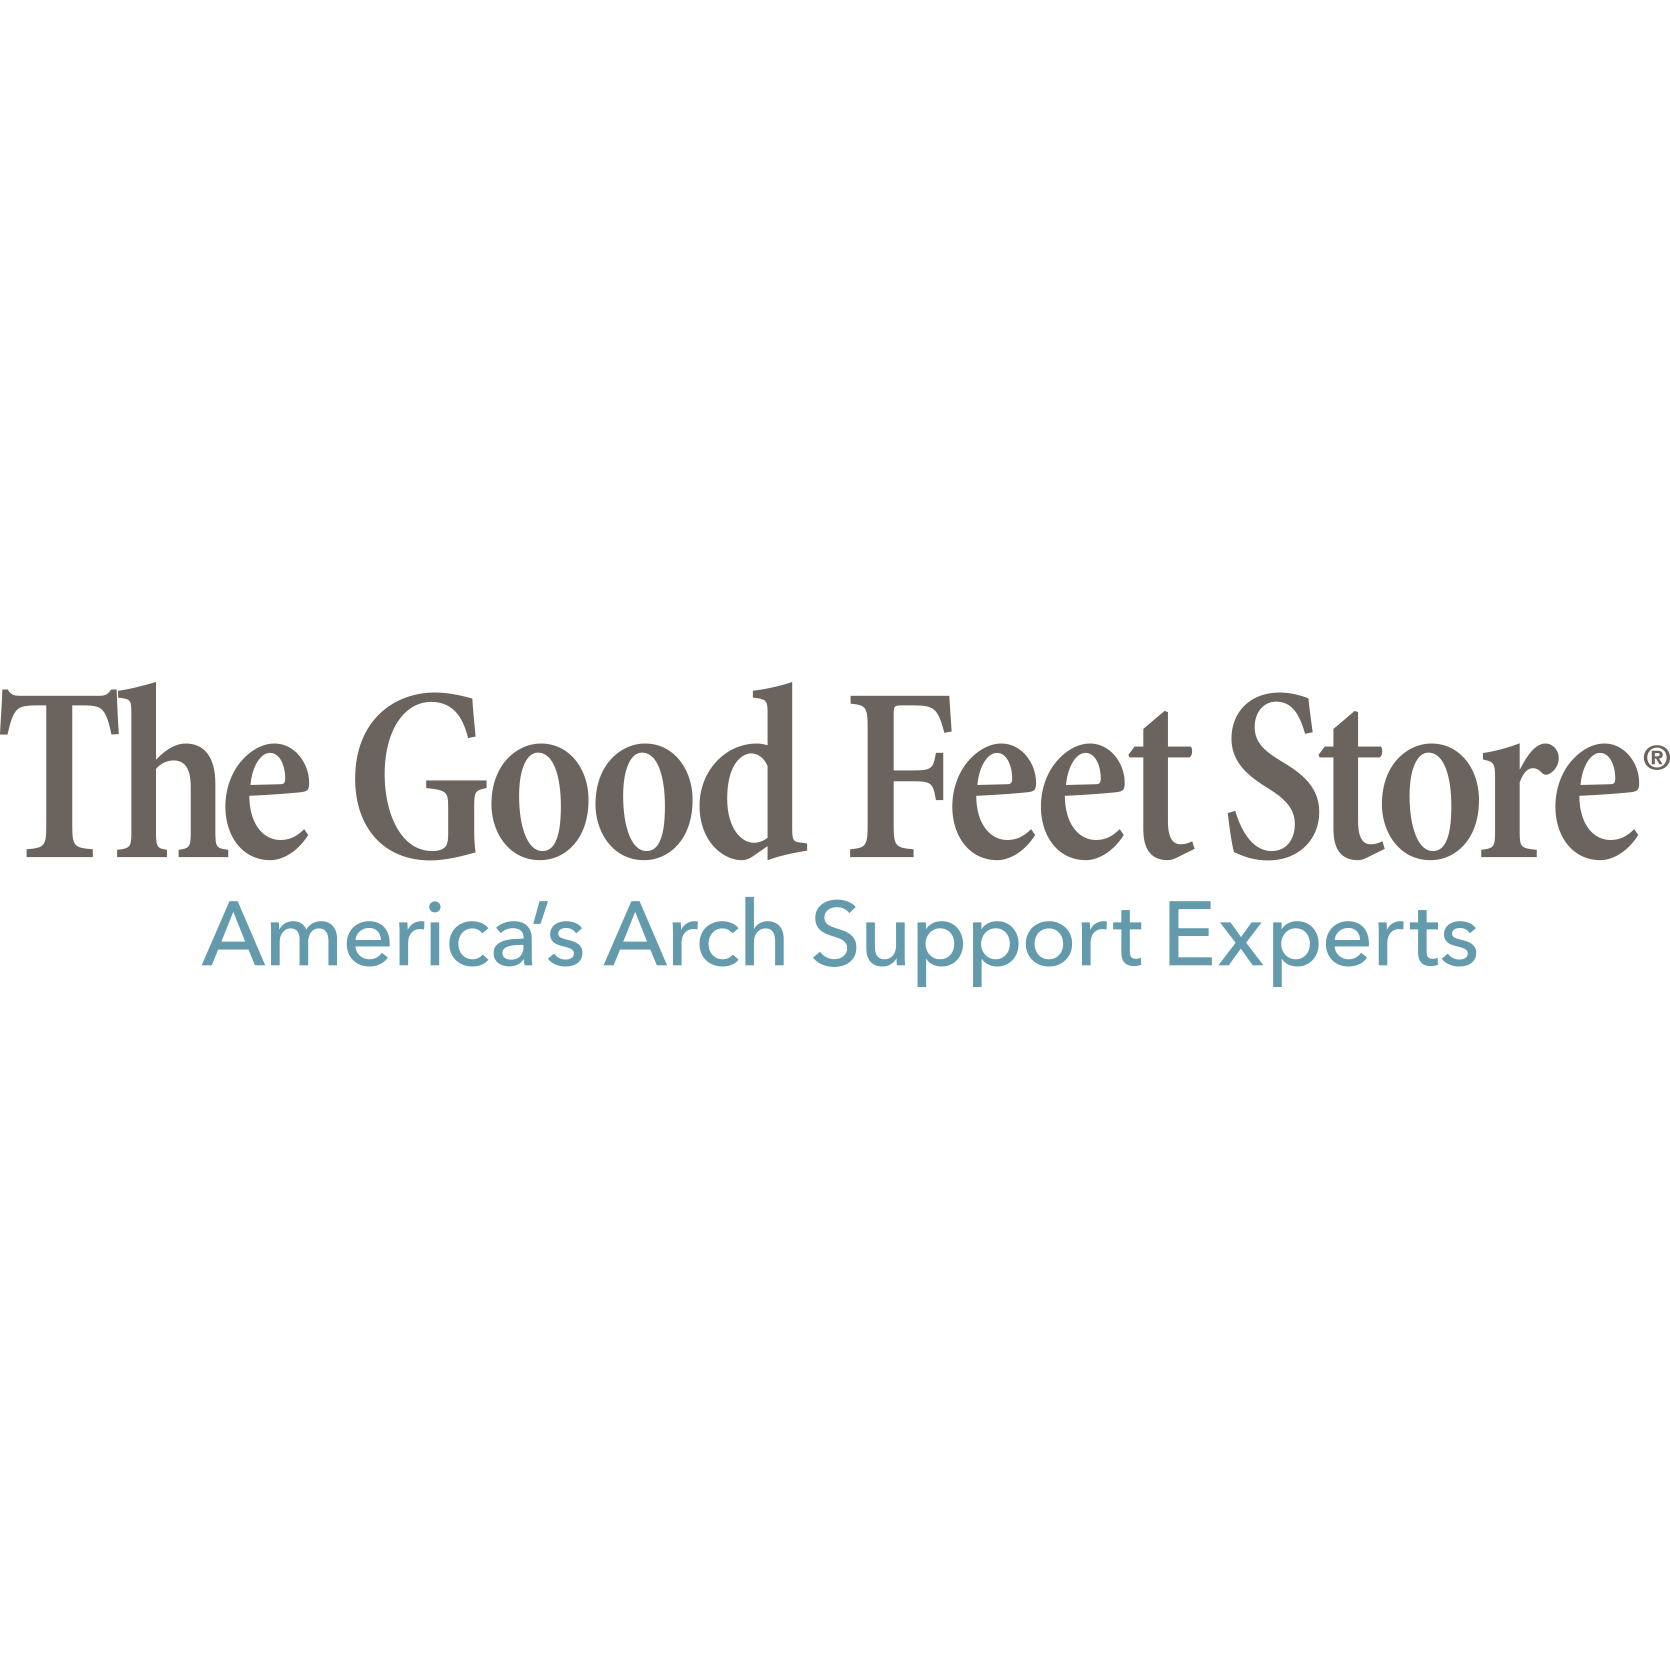 The Good Feet Store image 5